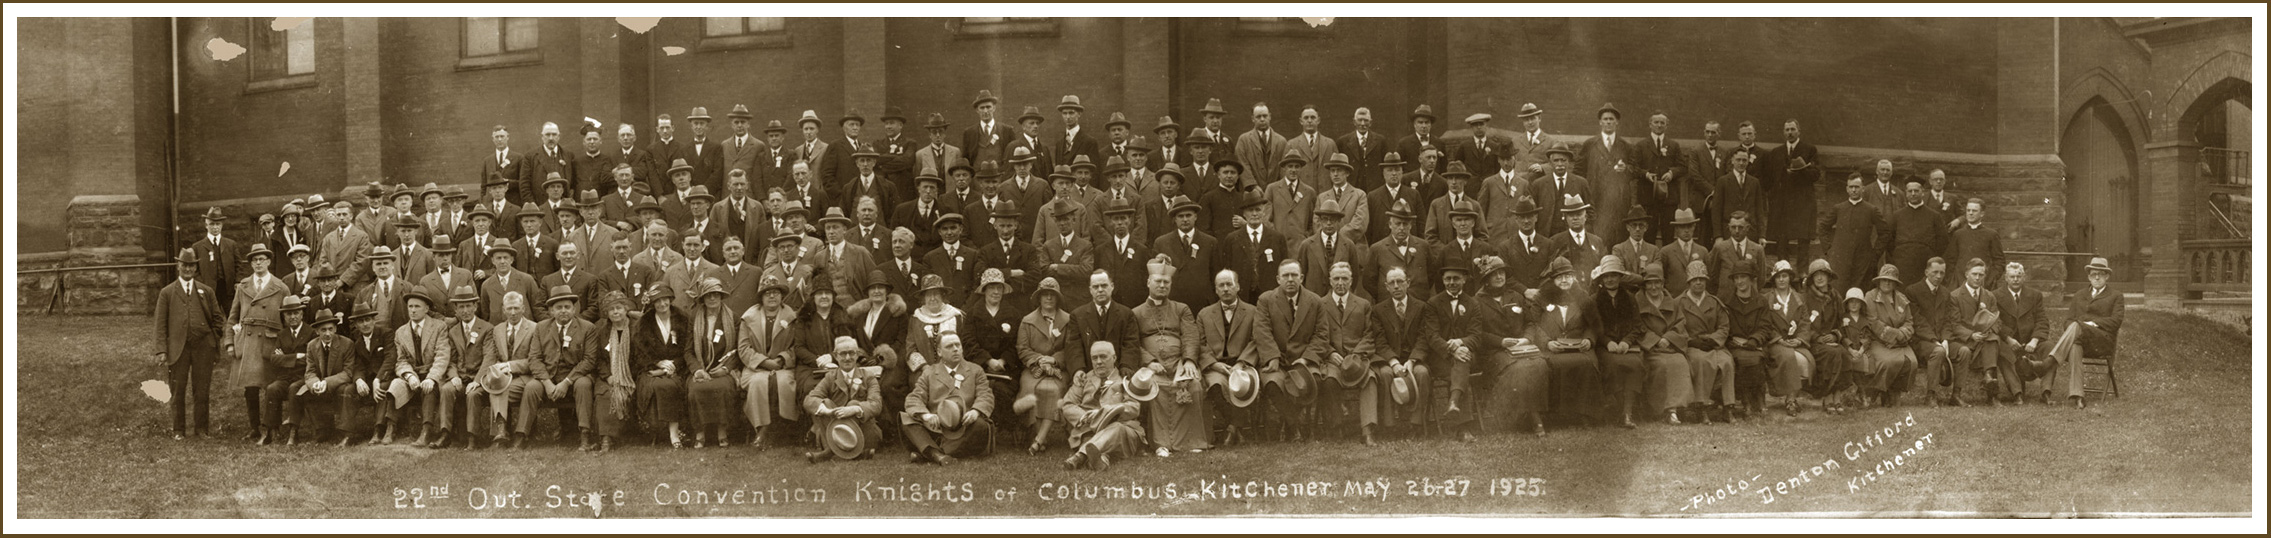 22nd Annual State Convention, Kitchener 1925